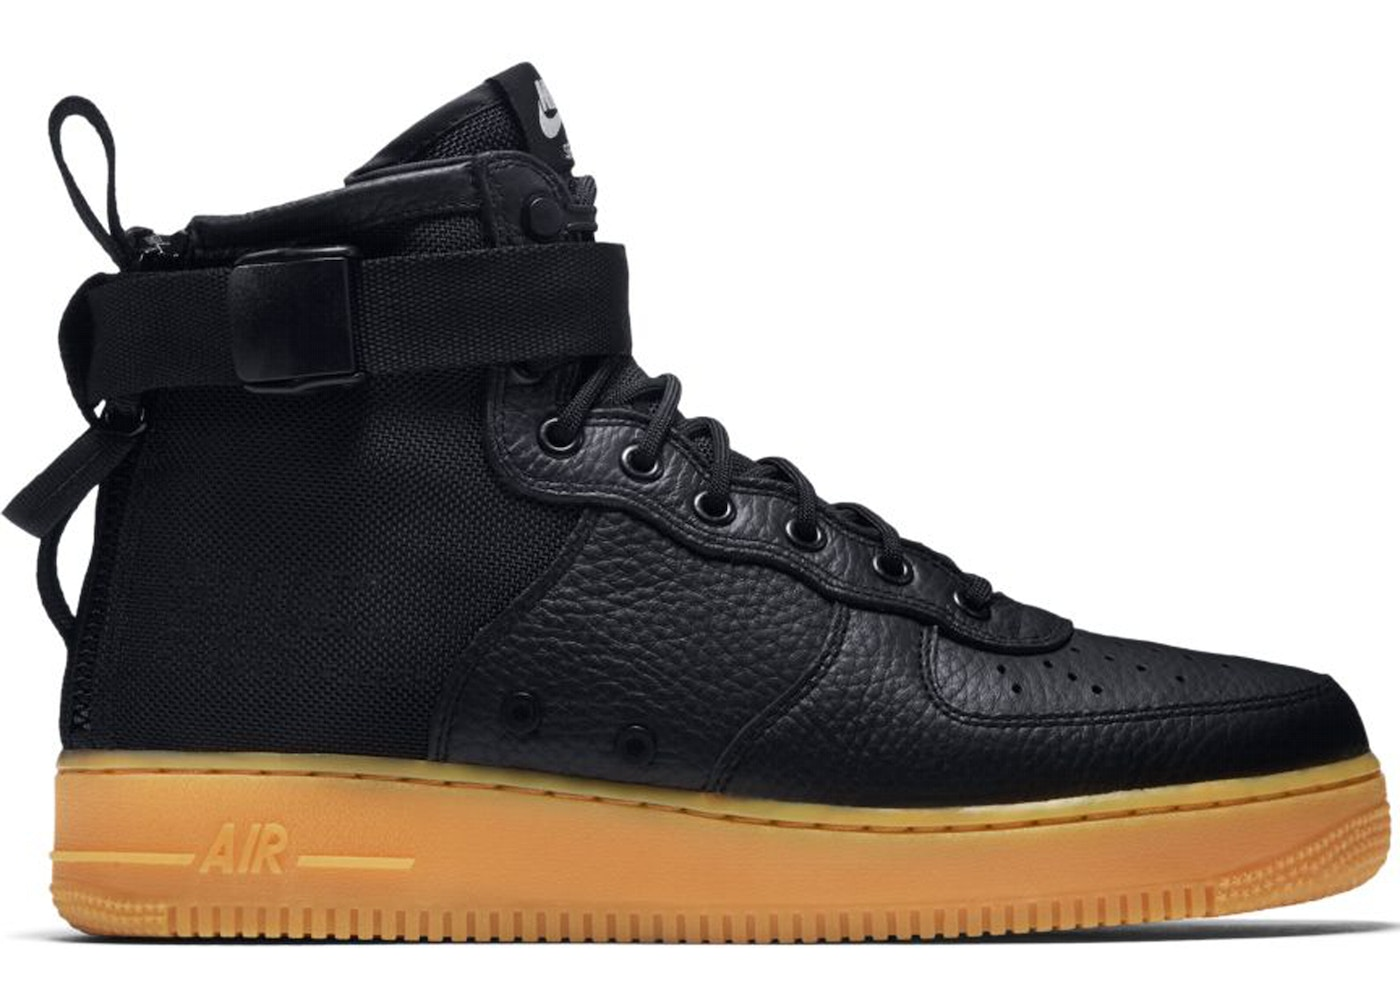 ... buy sale 826ff 464f9 buy cheap find great Nike SF AF1 Mid - Black Gum  from ... 2aacc184b2